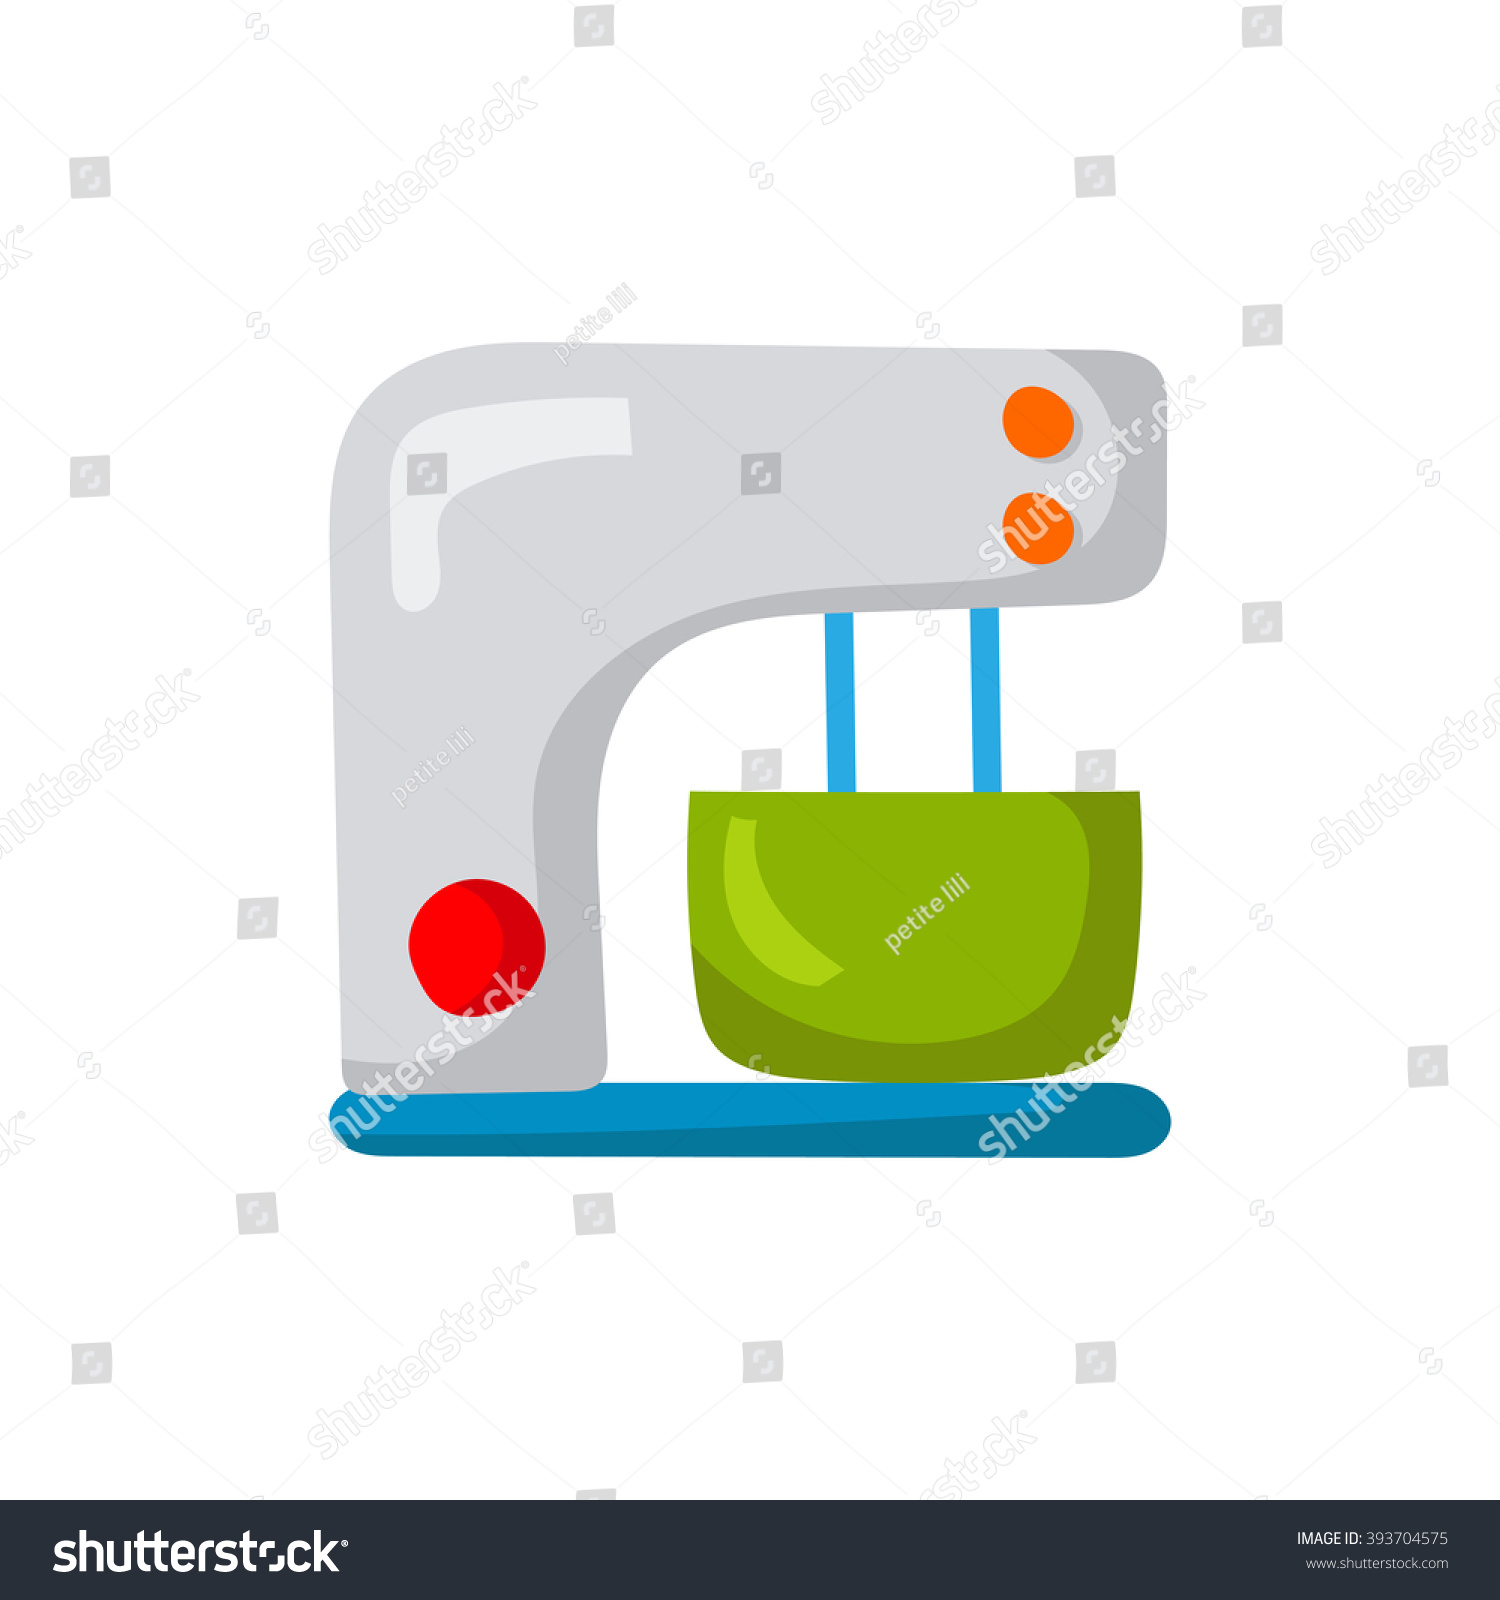 Uncategorized Cute Kitchen Appliances vector illustration cartoon stand mixer blender stock with or kitchen appliances background cute logo